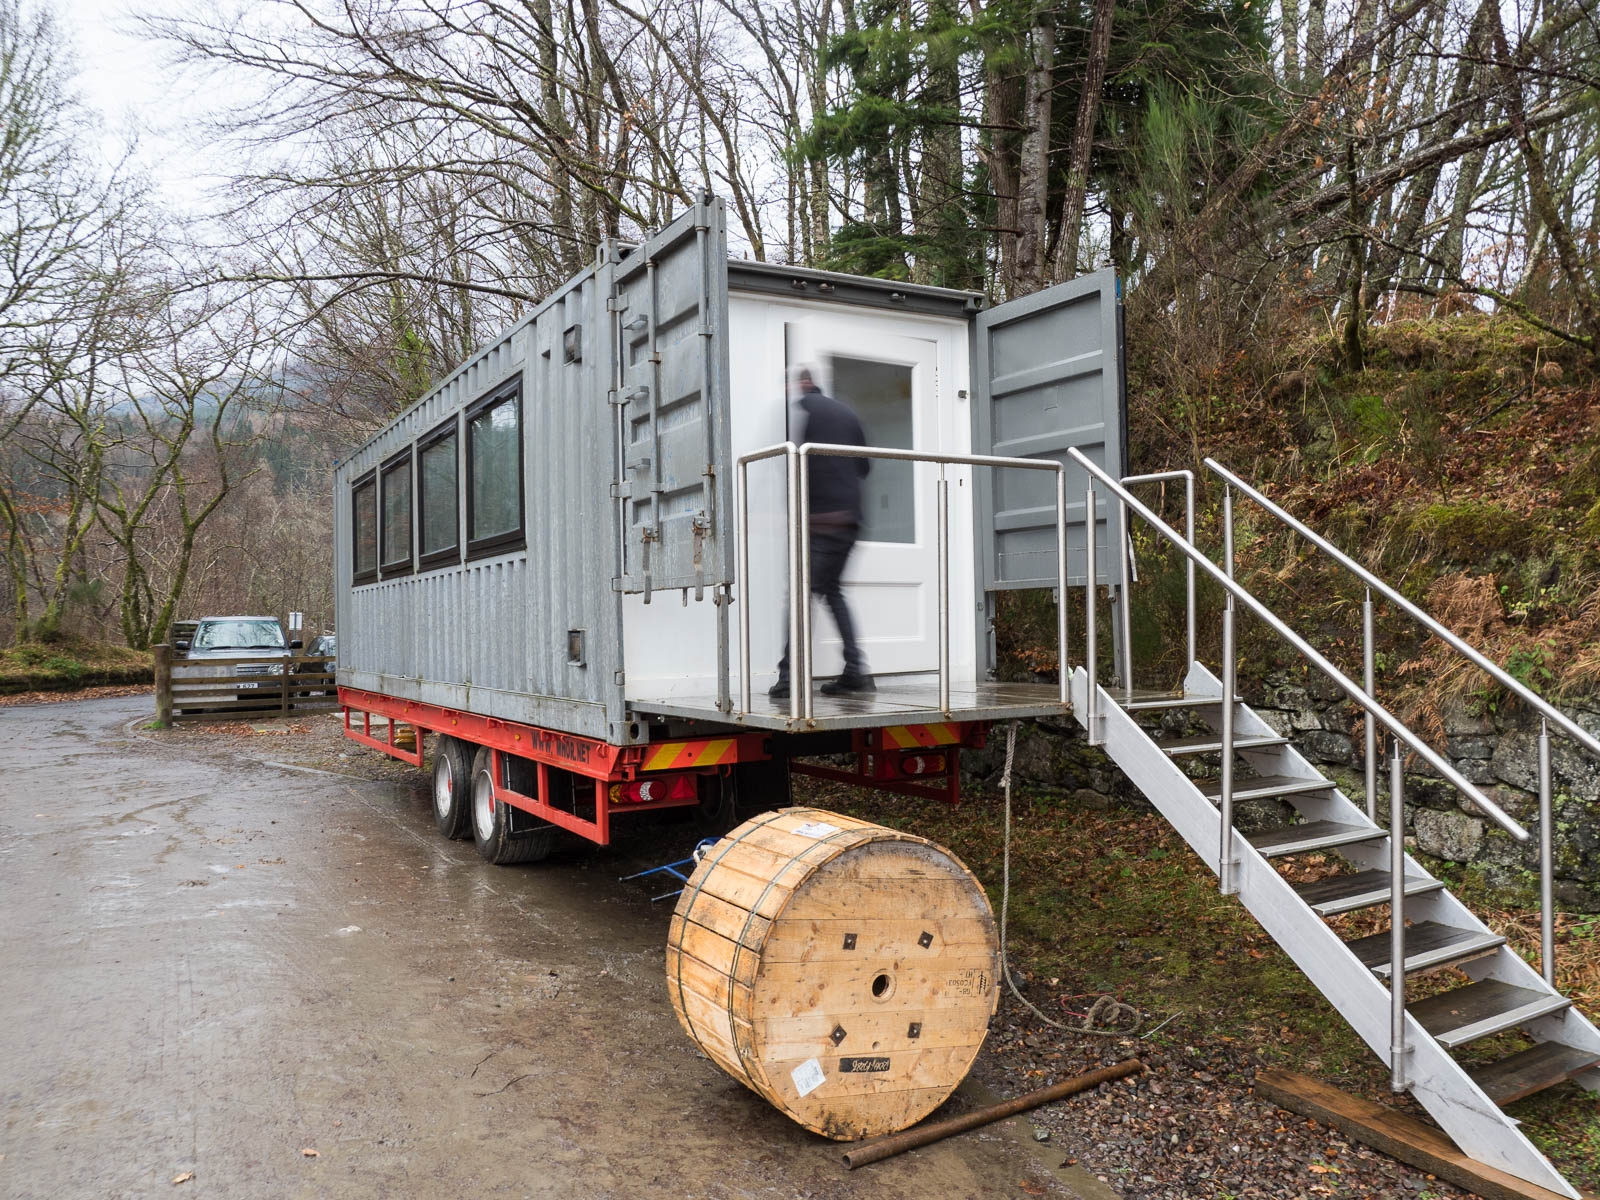 Mhor Mobile Restaurant on hand…